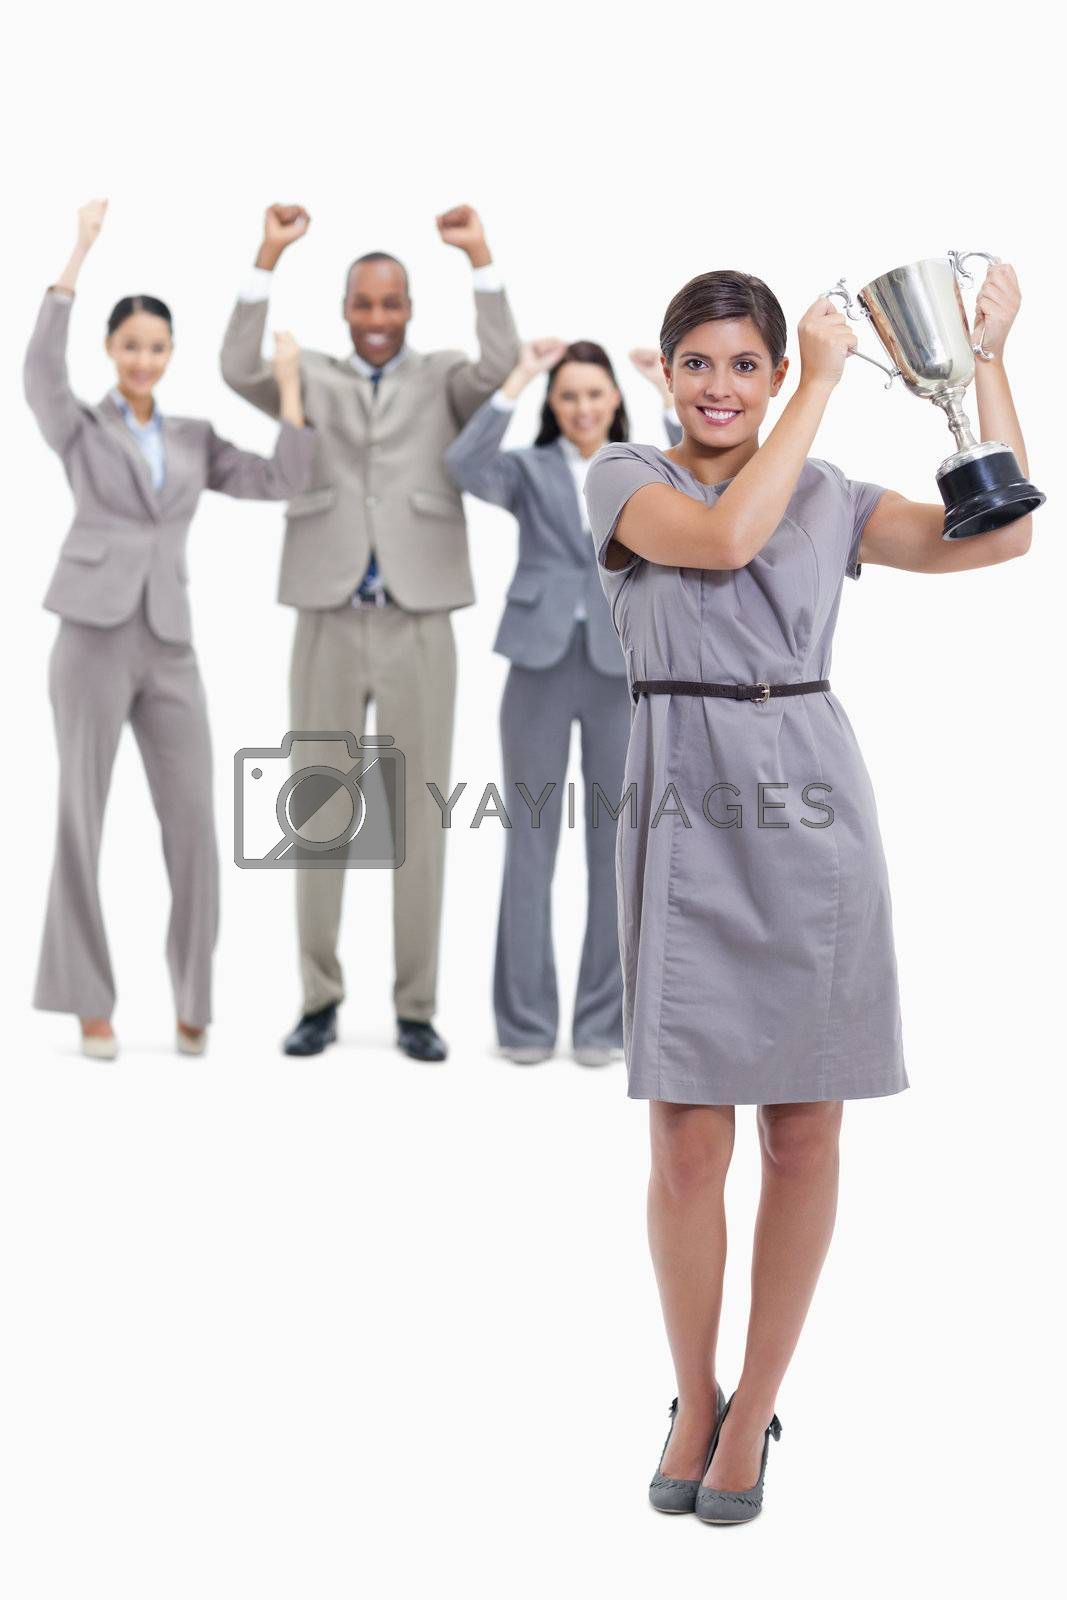 Picture centered on woman smiling and holding up a cup with co-workers raising their arms in the background